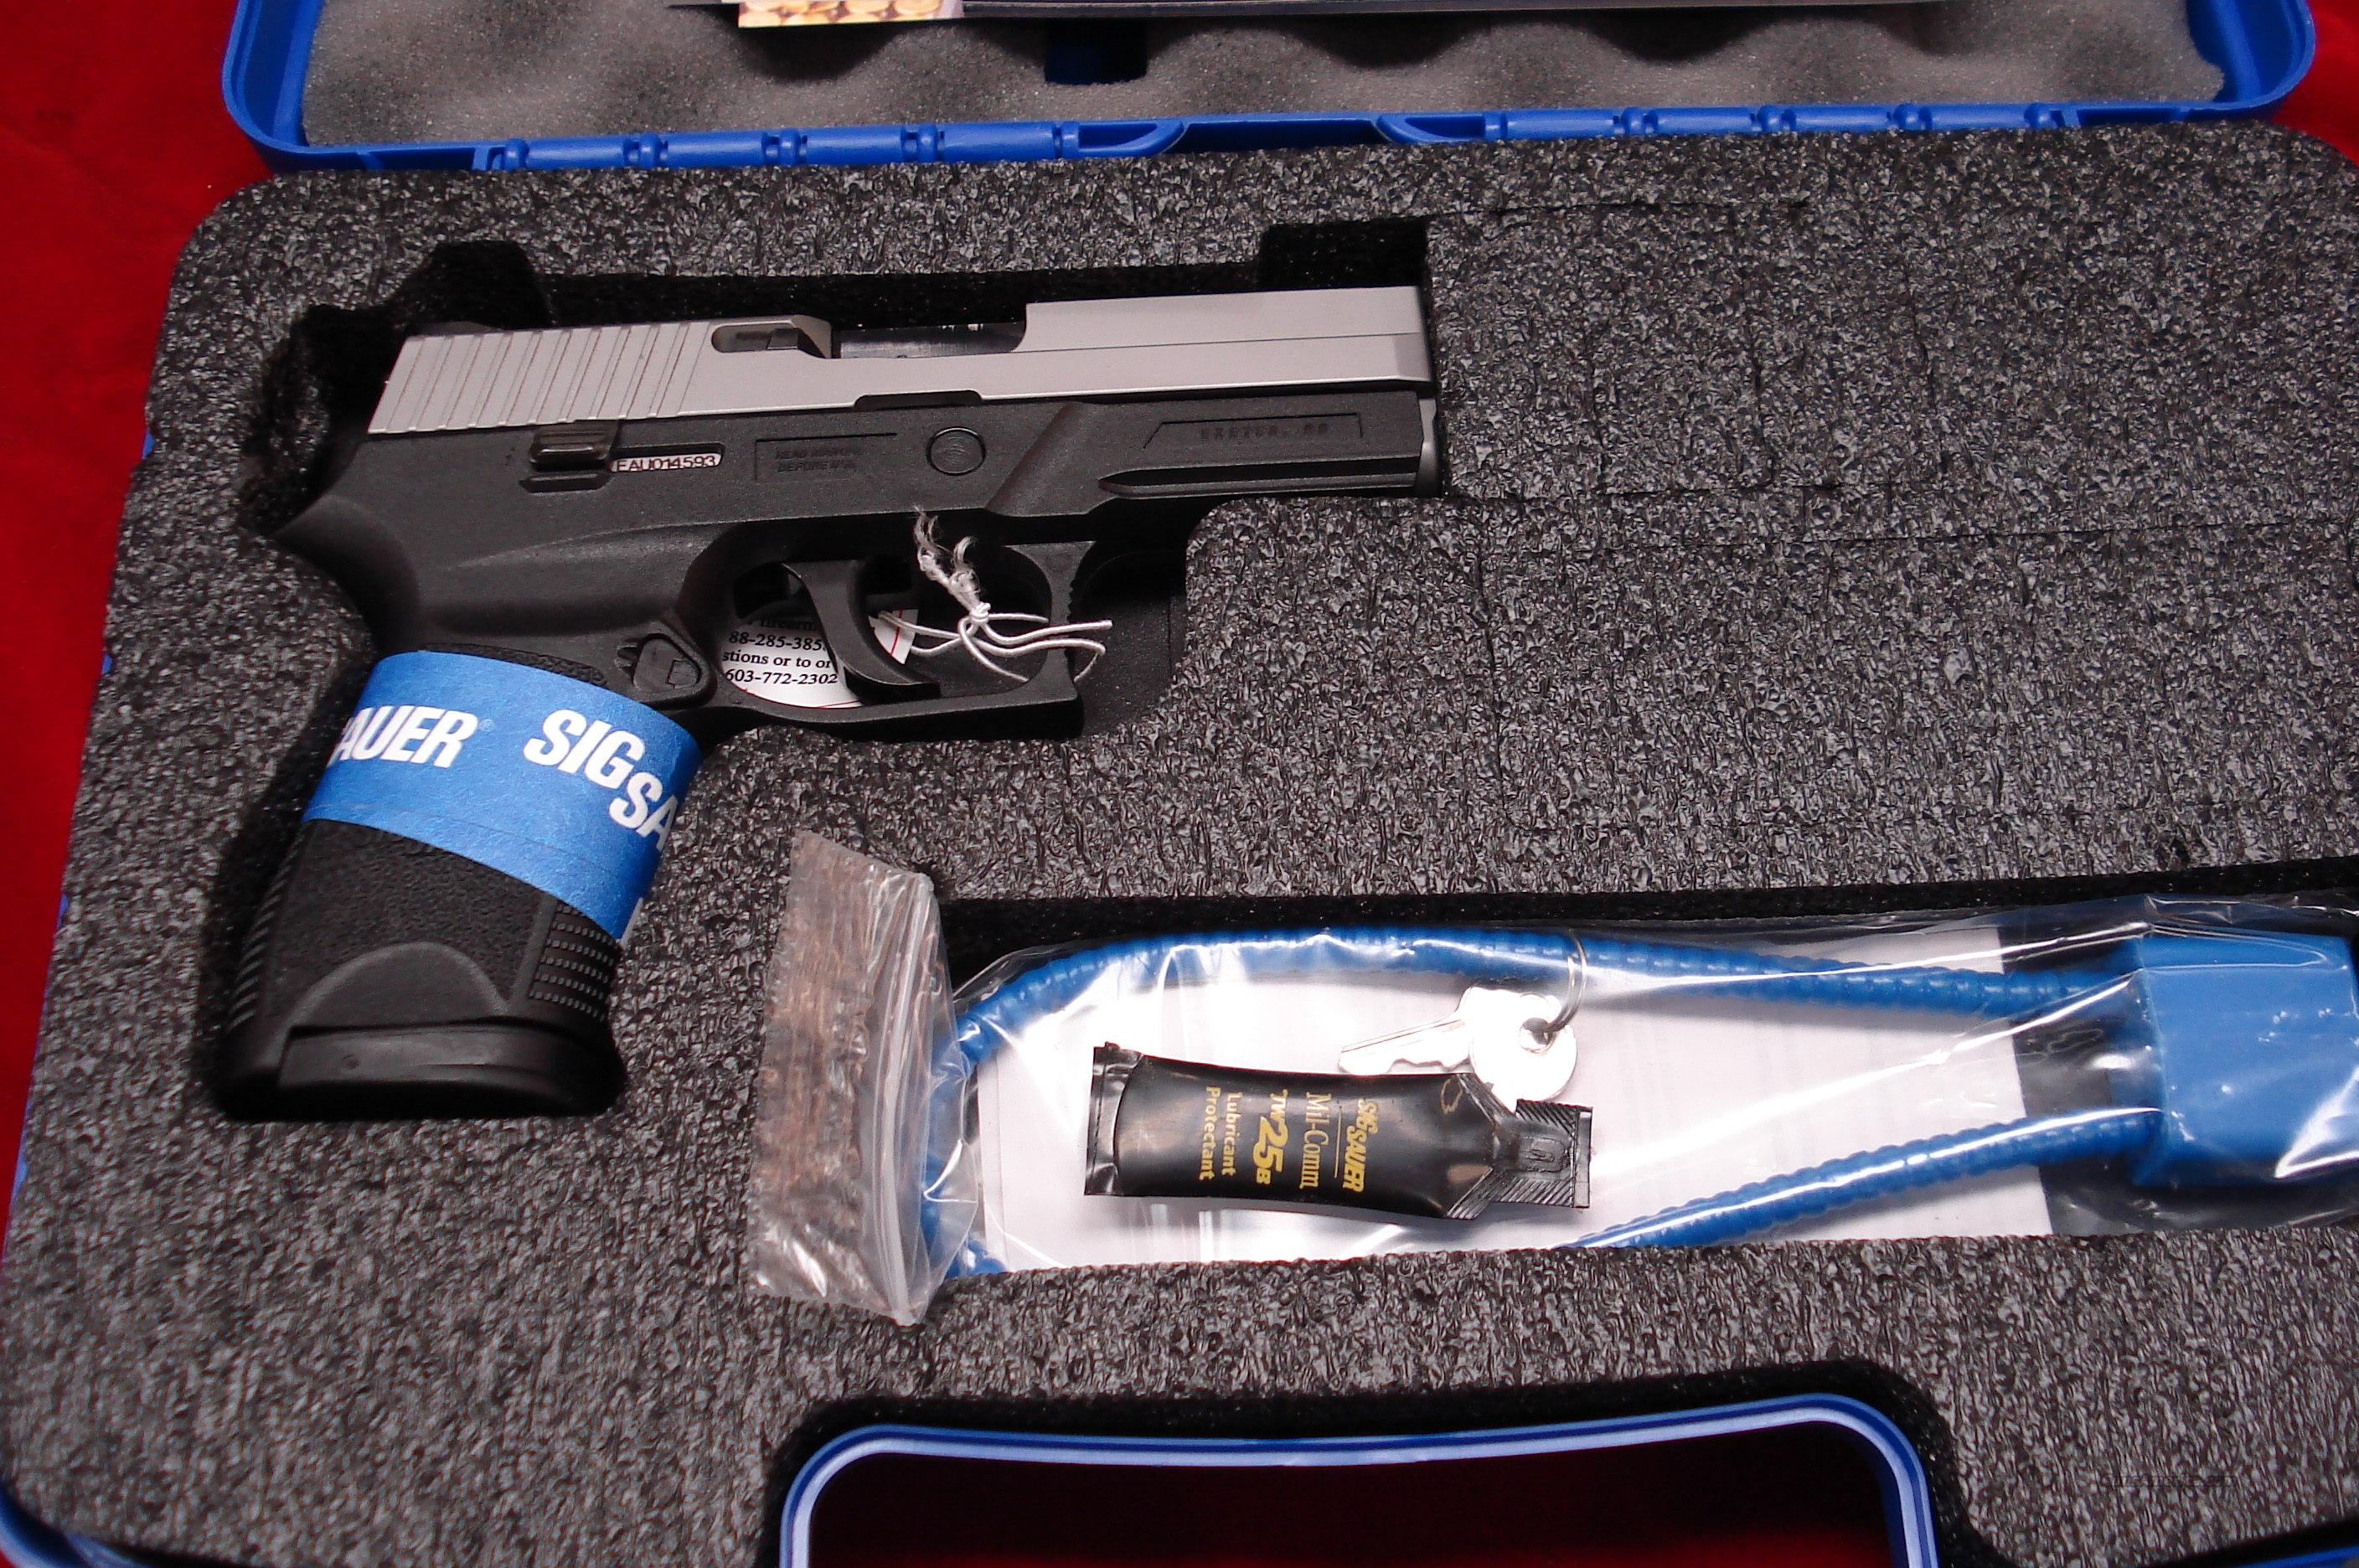 SIG P250 9MM COMPACT STAINLESS W/NIGHT SIGHTS NEW  Guns > Pistols > Sig - Sauer/Sigarms Pistols > P250